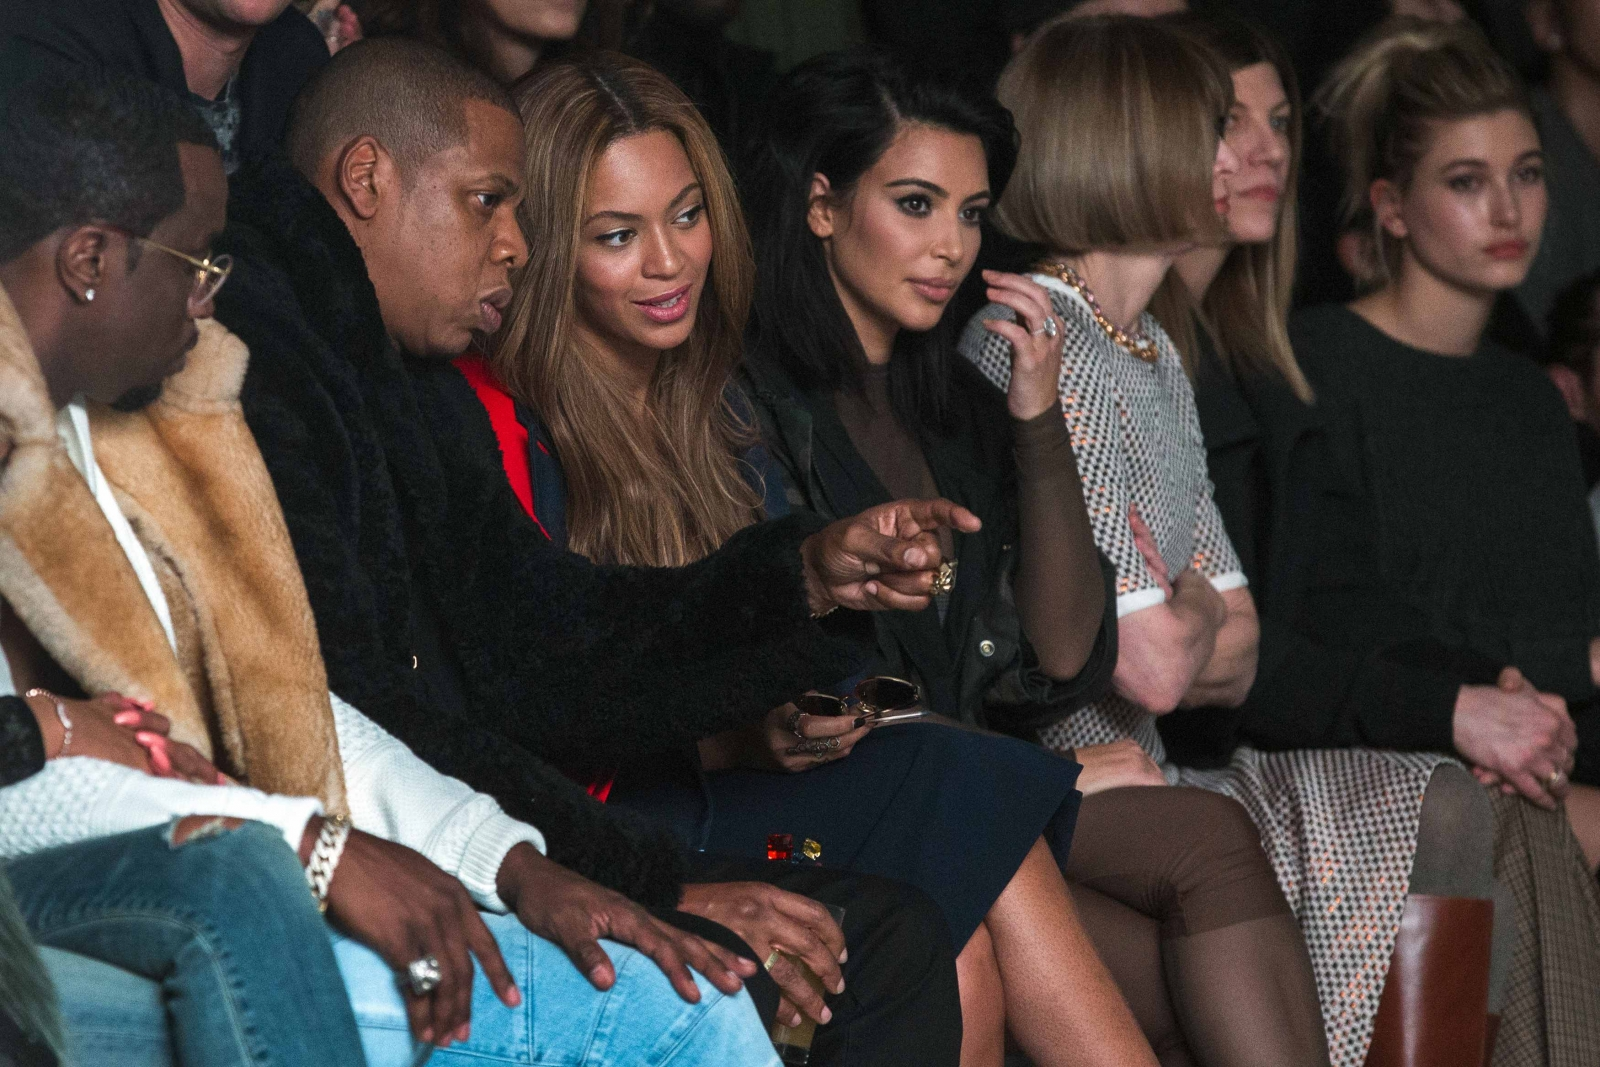 Kim K, Jay-Z and P. Diddy watch as Kanye West unveils Yeezy clothing line